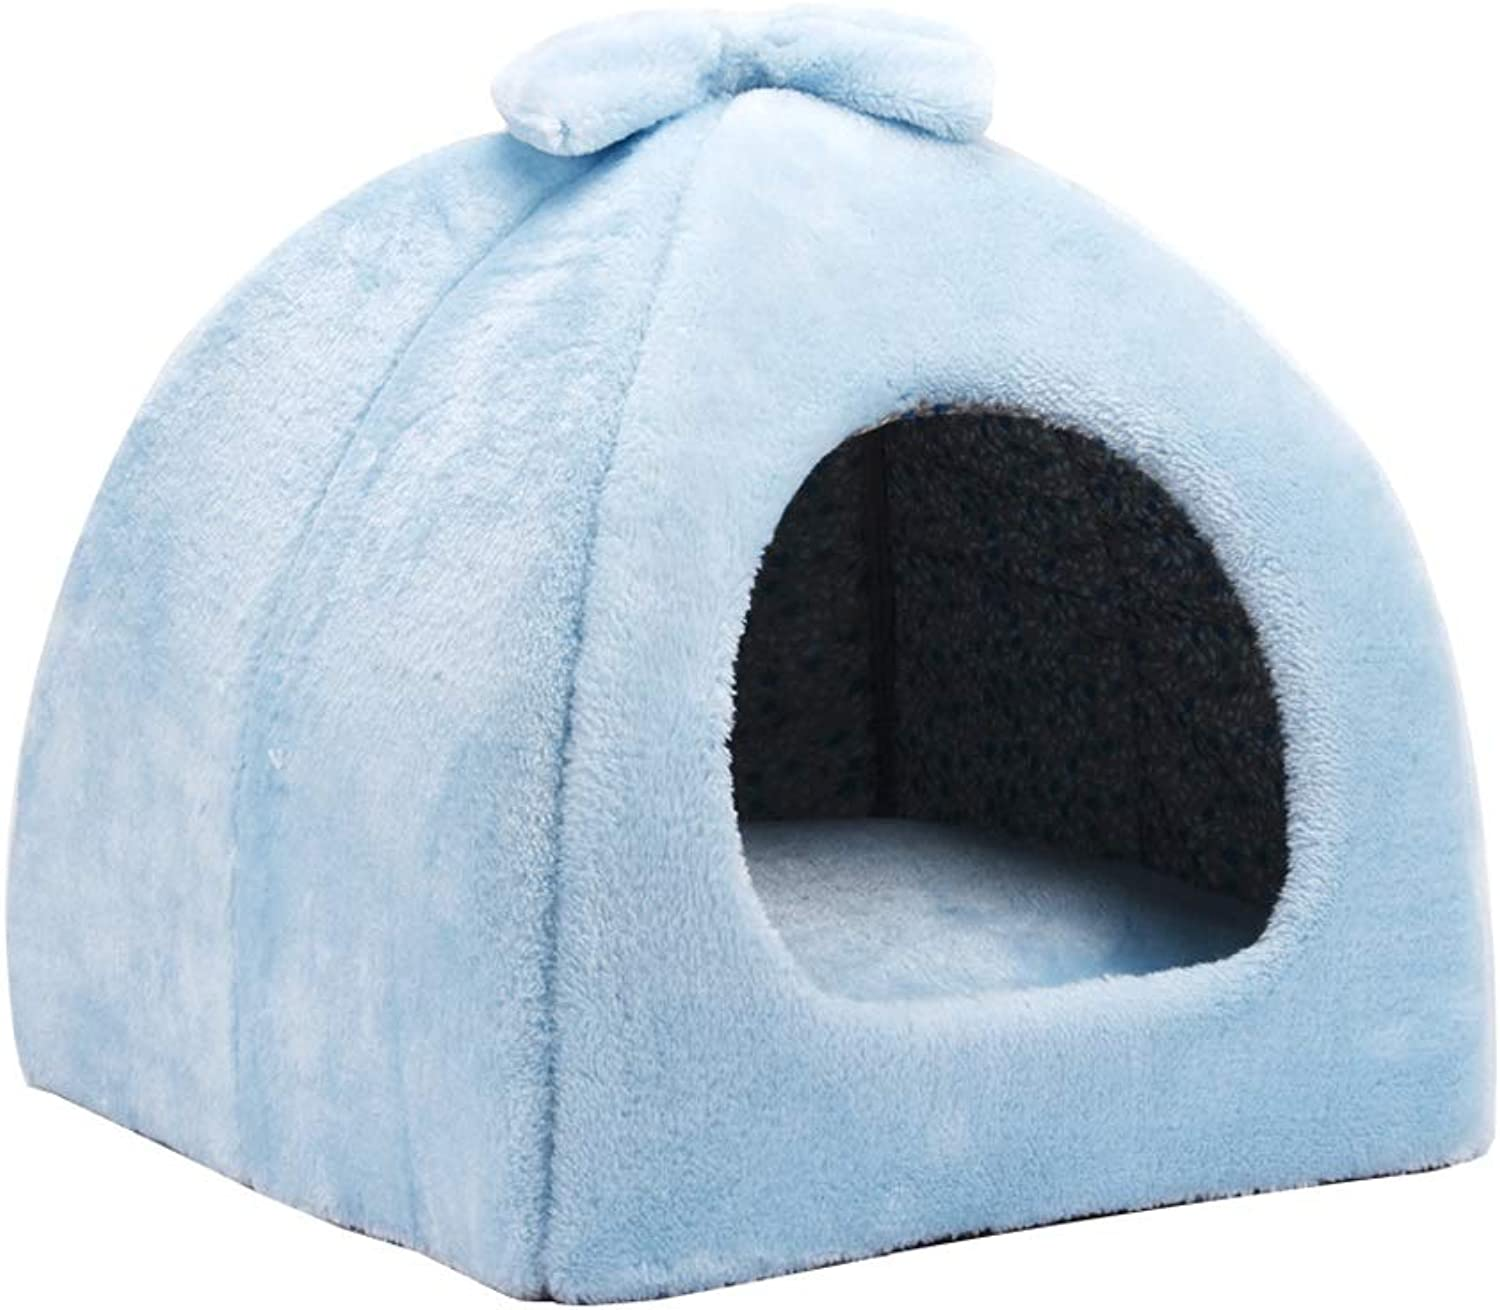 Kennel, Cat Nest Small Dog Pet Mat Bed Room House Winter Warm Pink bluee Seasons Available in Three Sizes (color   bluee, Size   S)